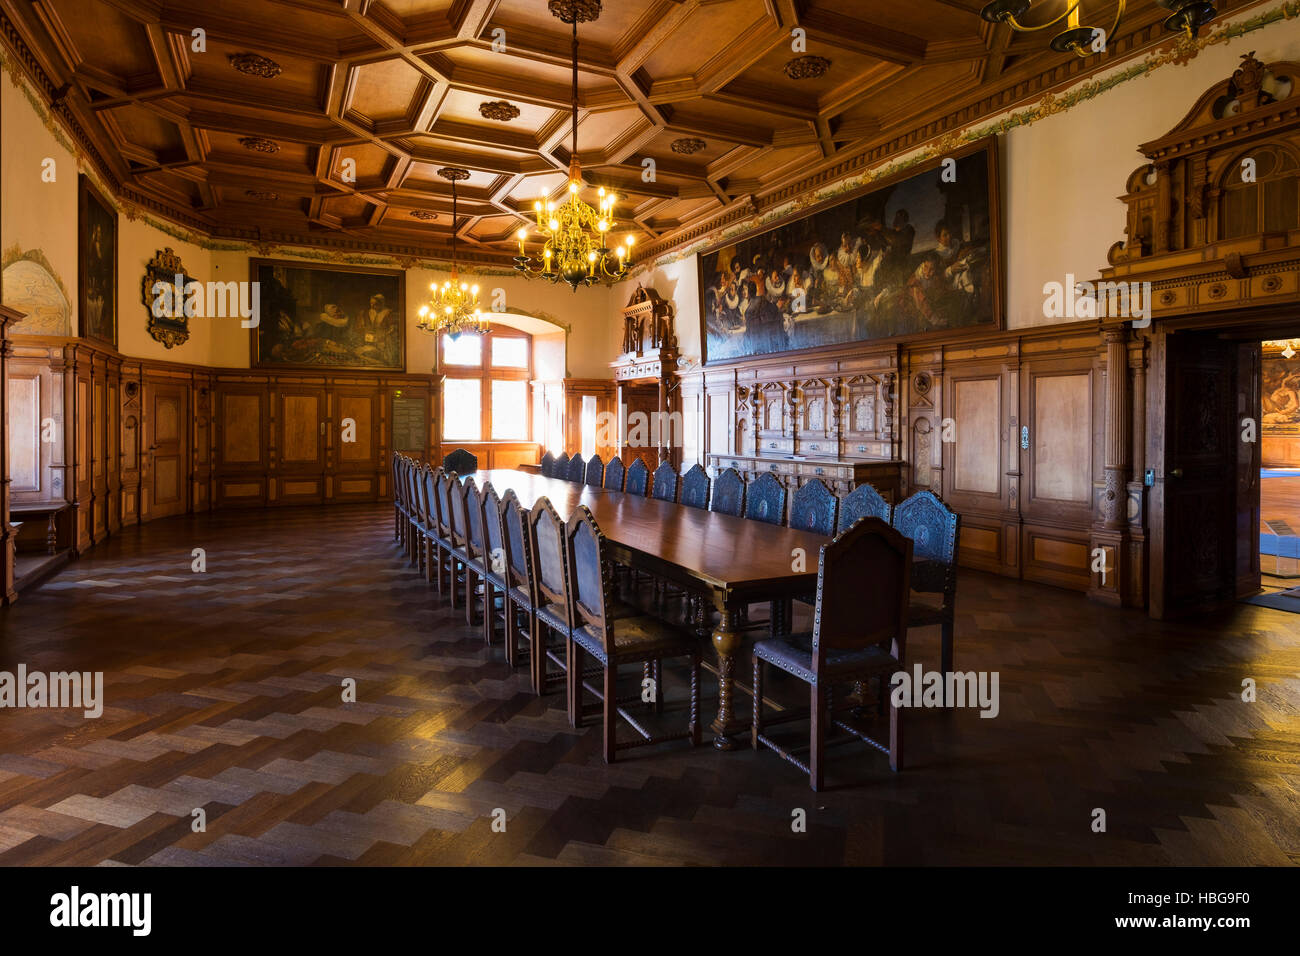 medieval castle dining room stock photos & medieval castle dining